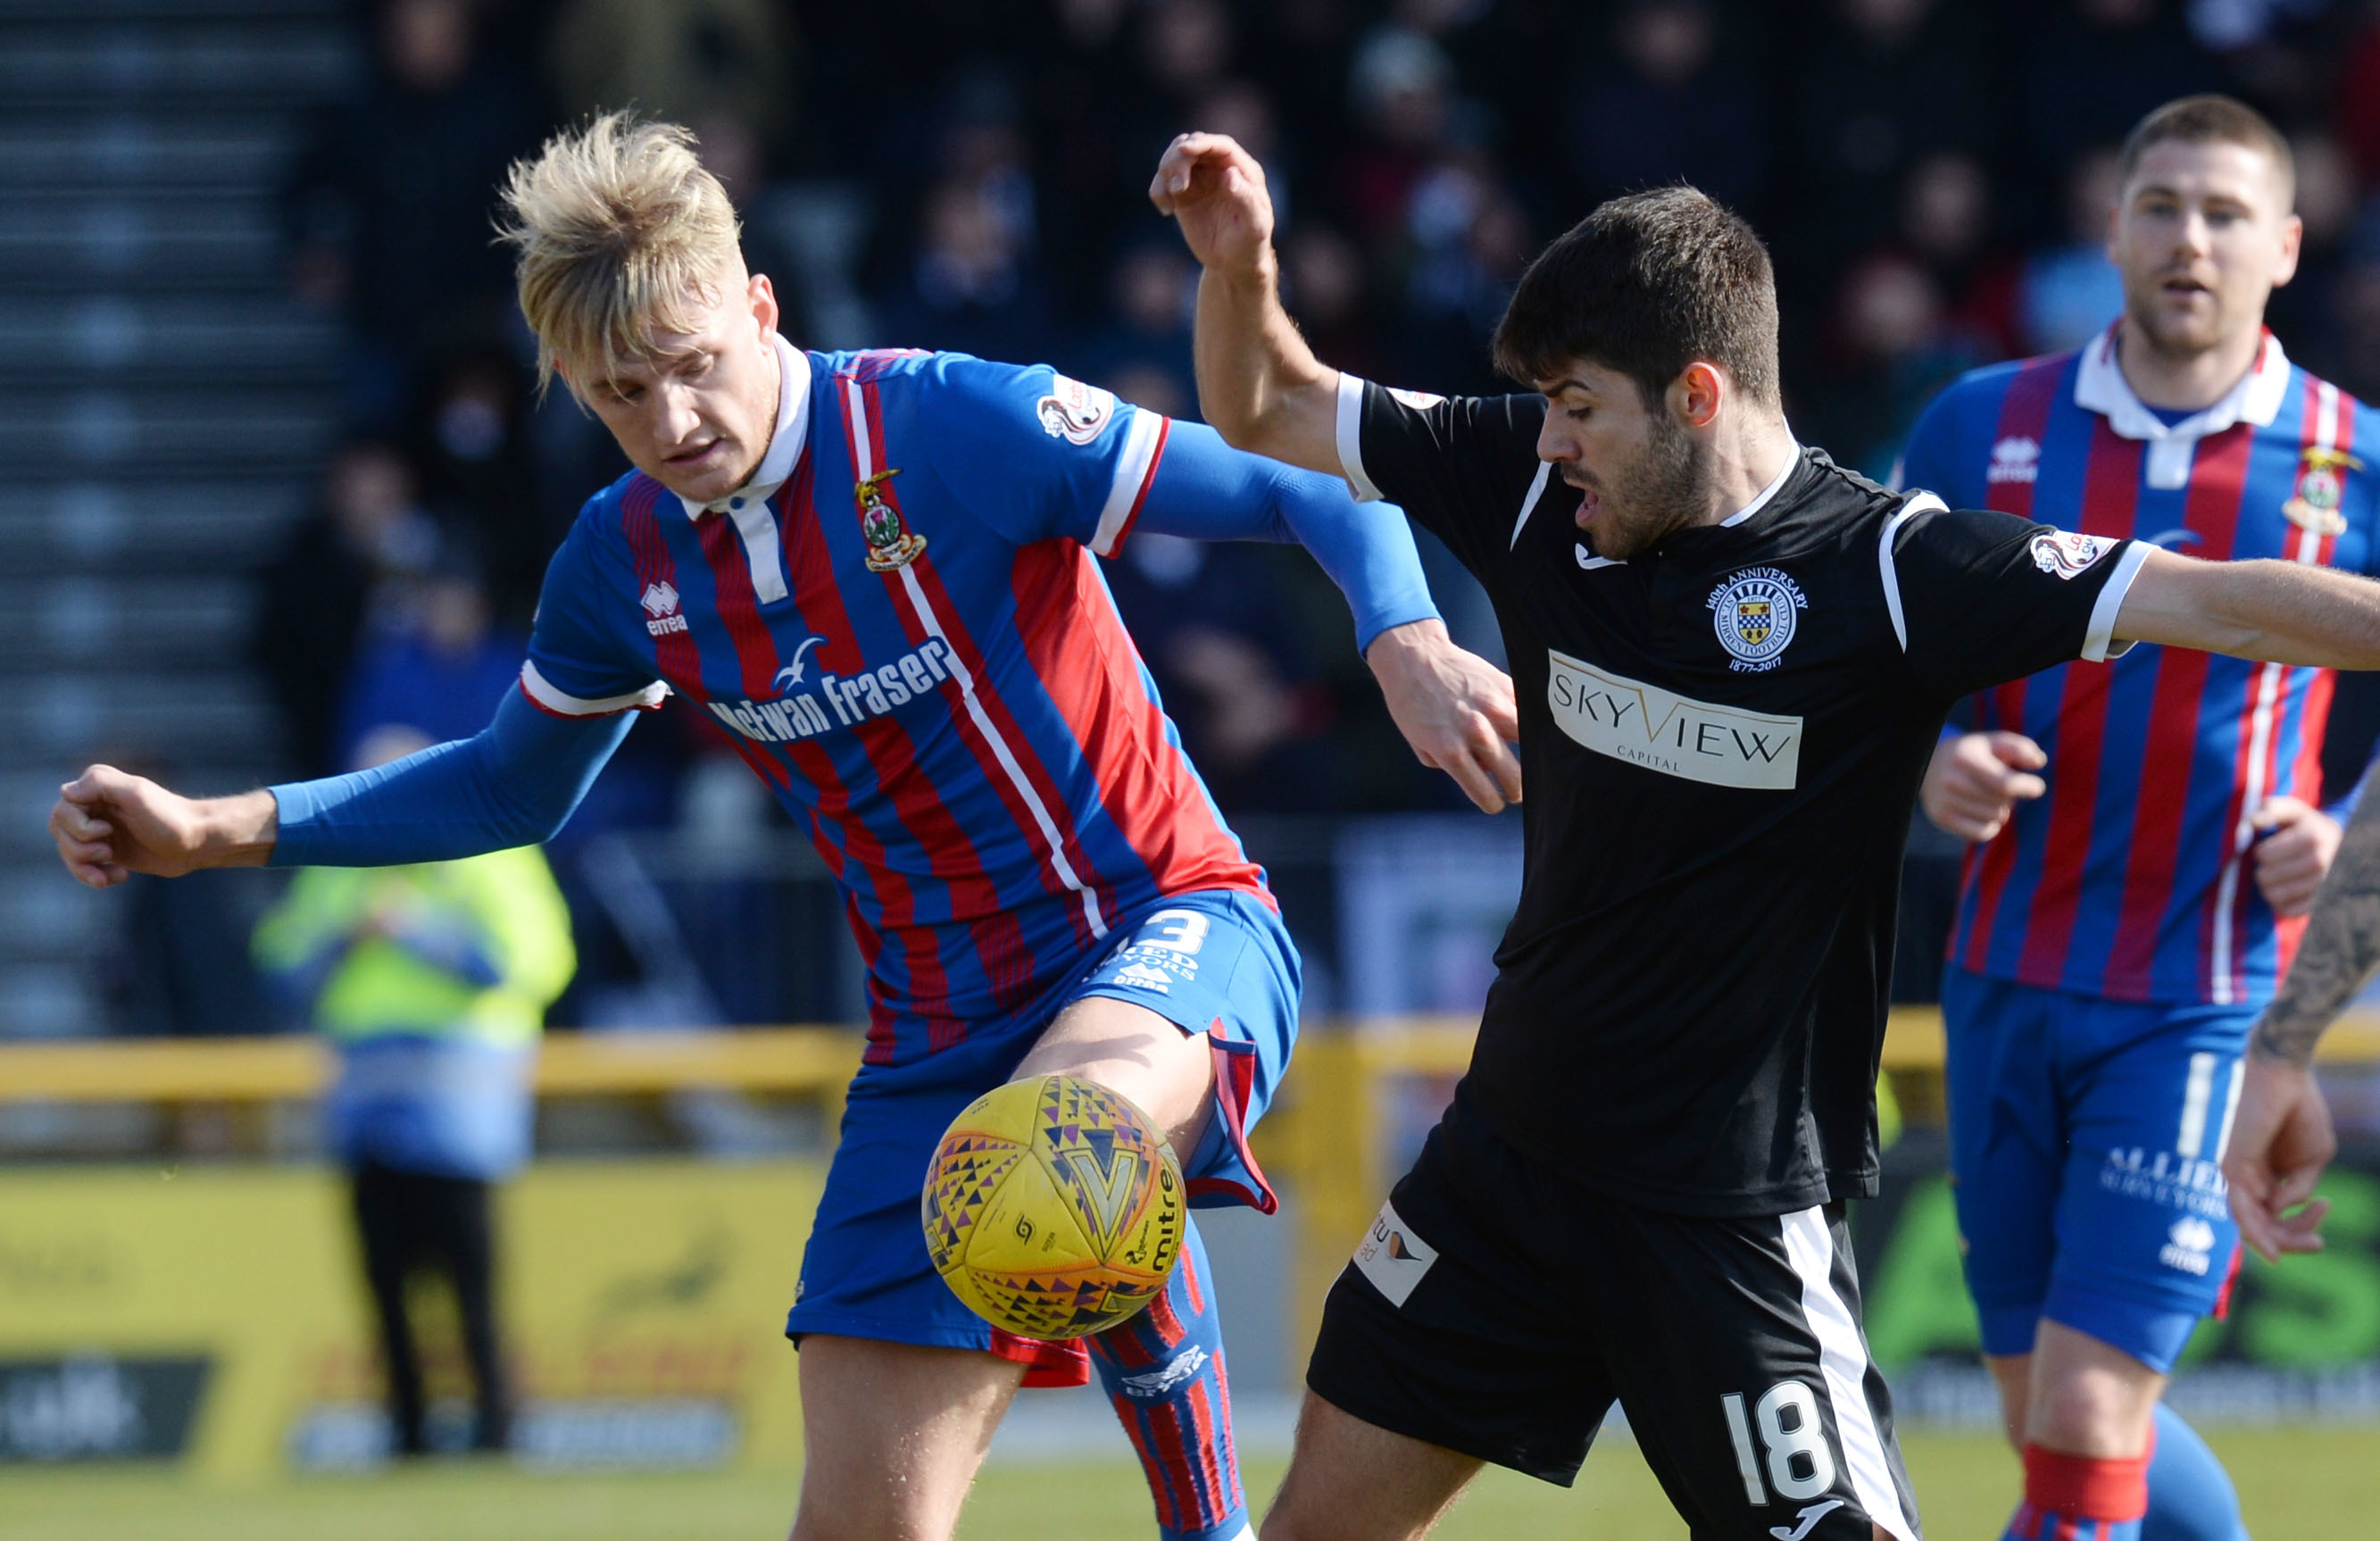 Inverness' Coll Donaldson and St Mirren's Ryan Flynn battle for possession.